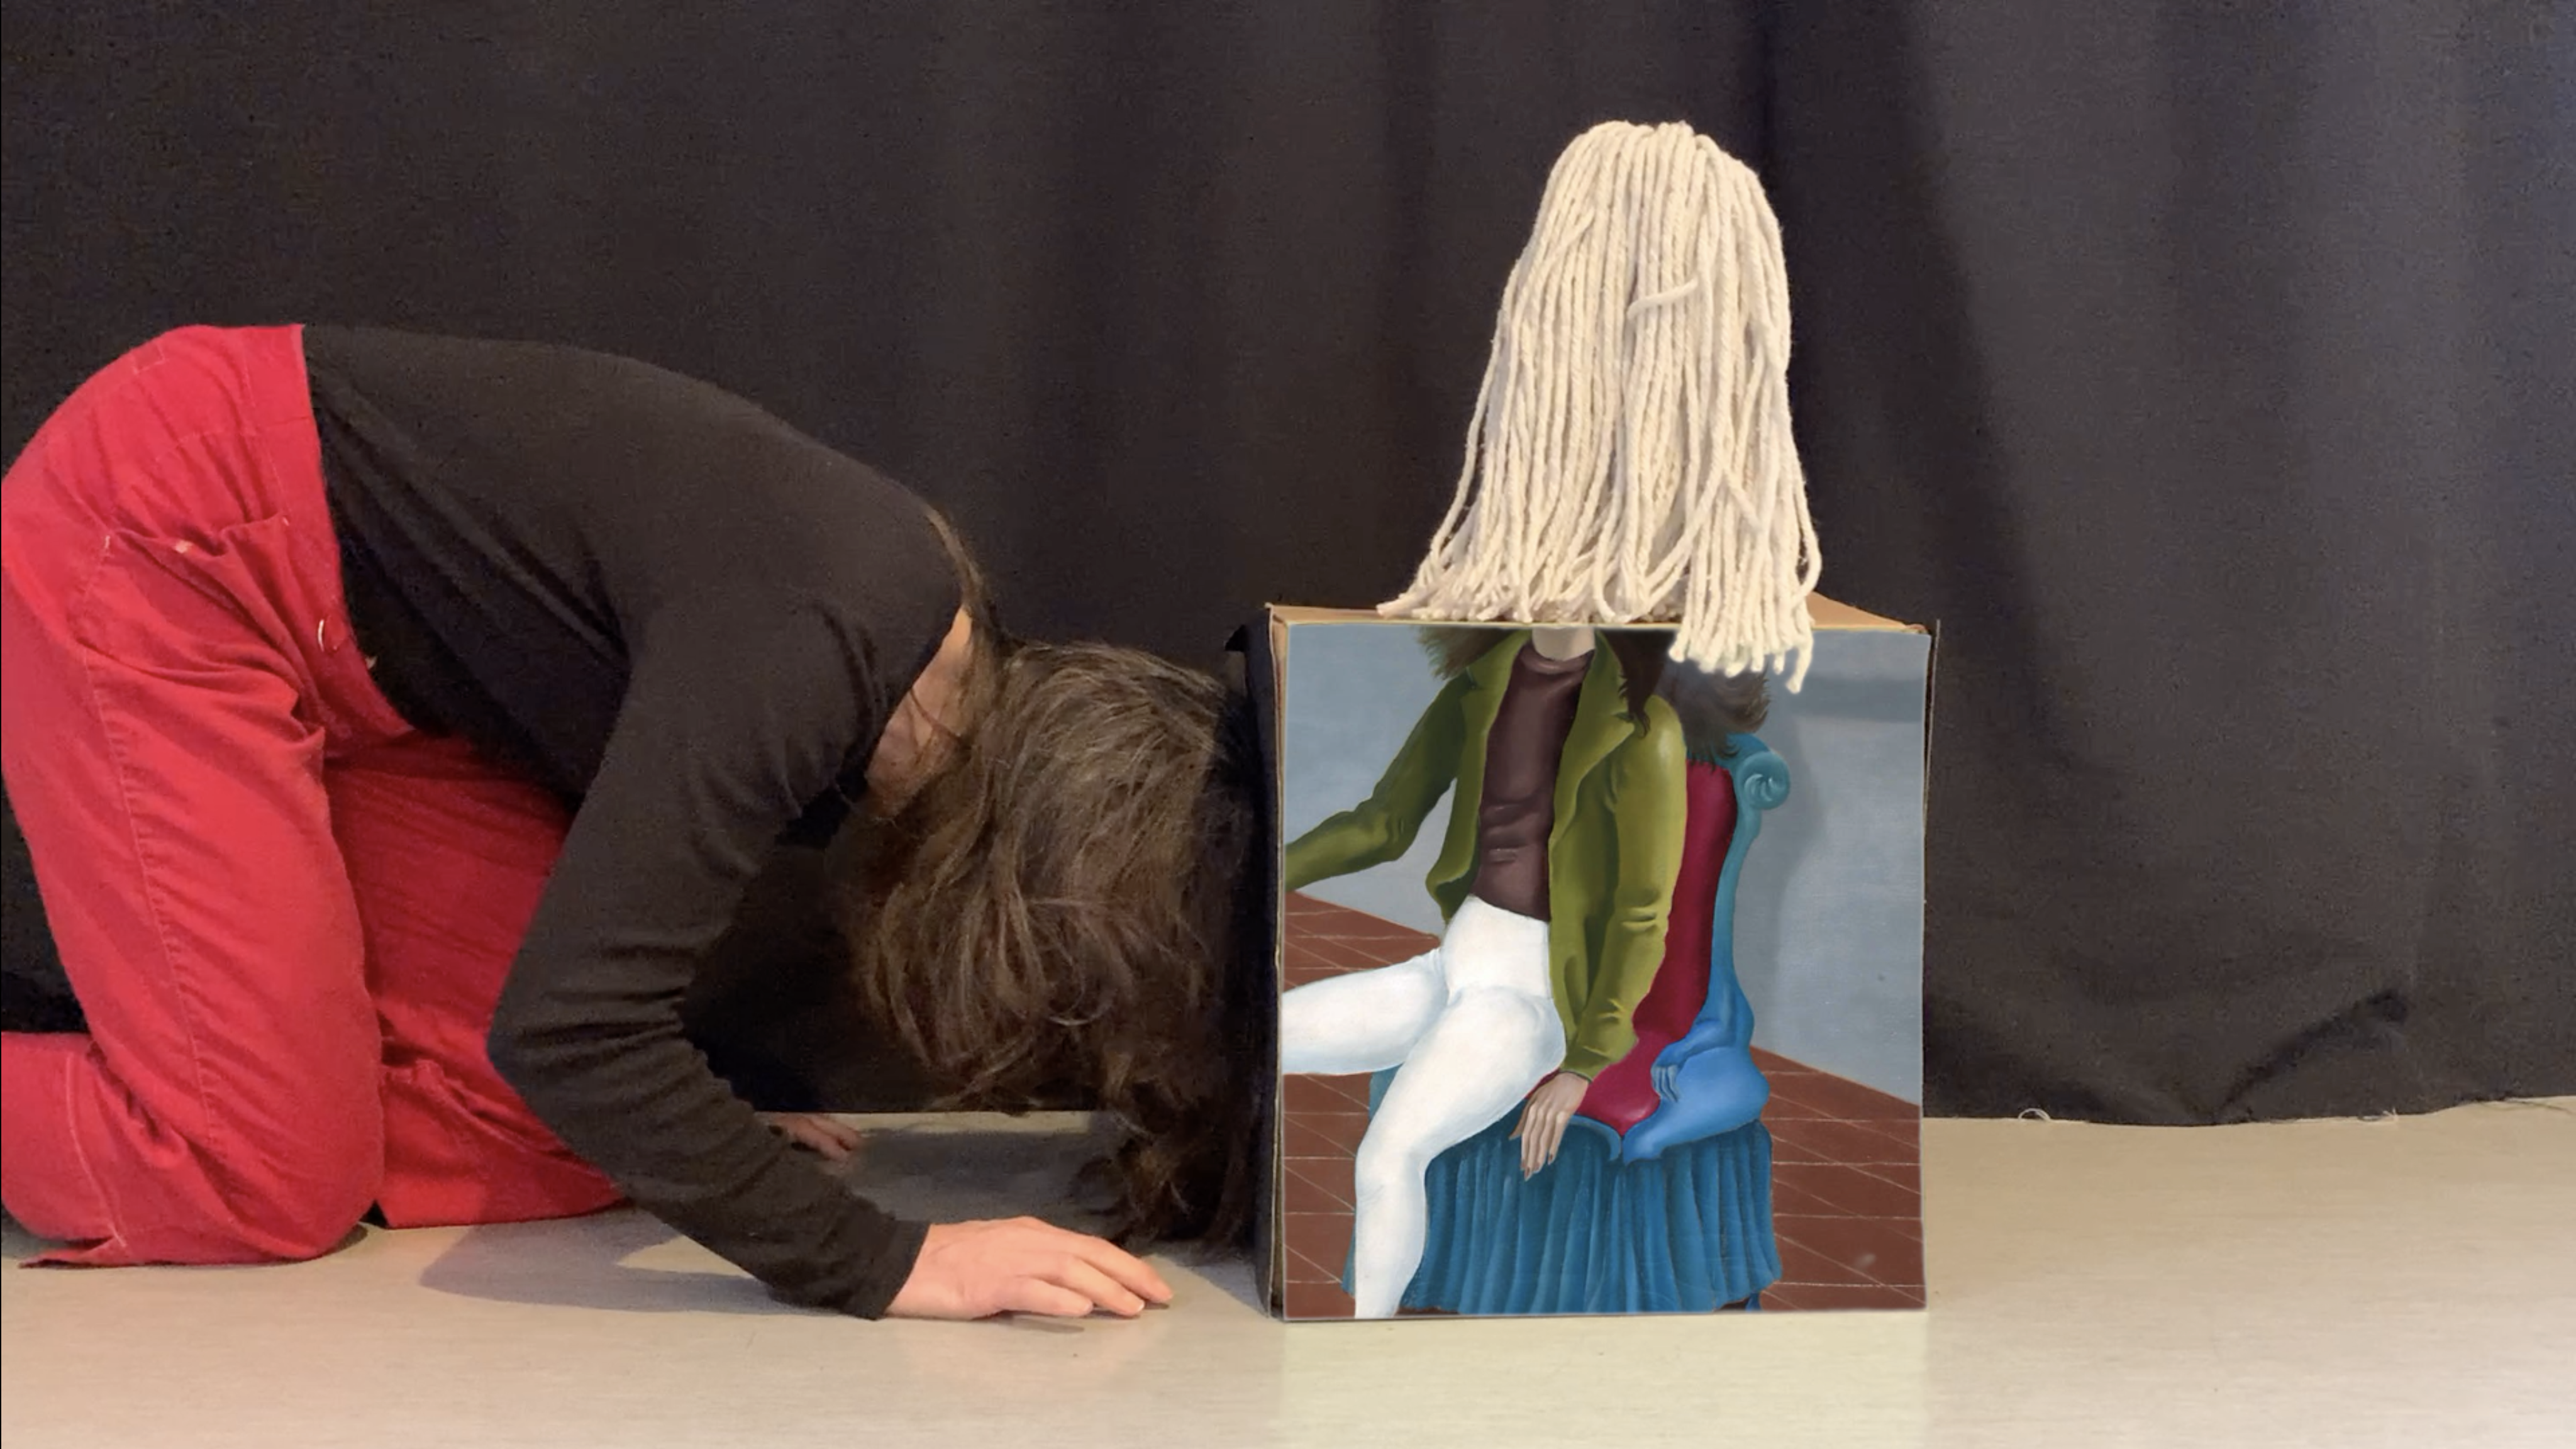 Person in red pants crawling and pushing a box with their head. The front of the box has an image of someone in white pants and green jacket sitting on a blue chair. Their head is above the frame of the image. The head of a string mop is on top of the box, sort of where the head of the person in the picture would be.